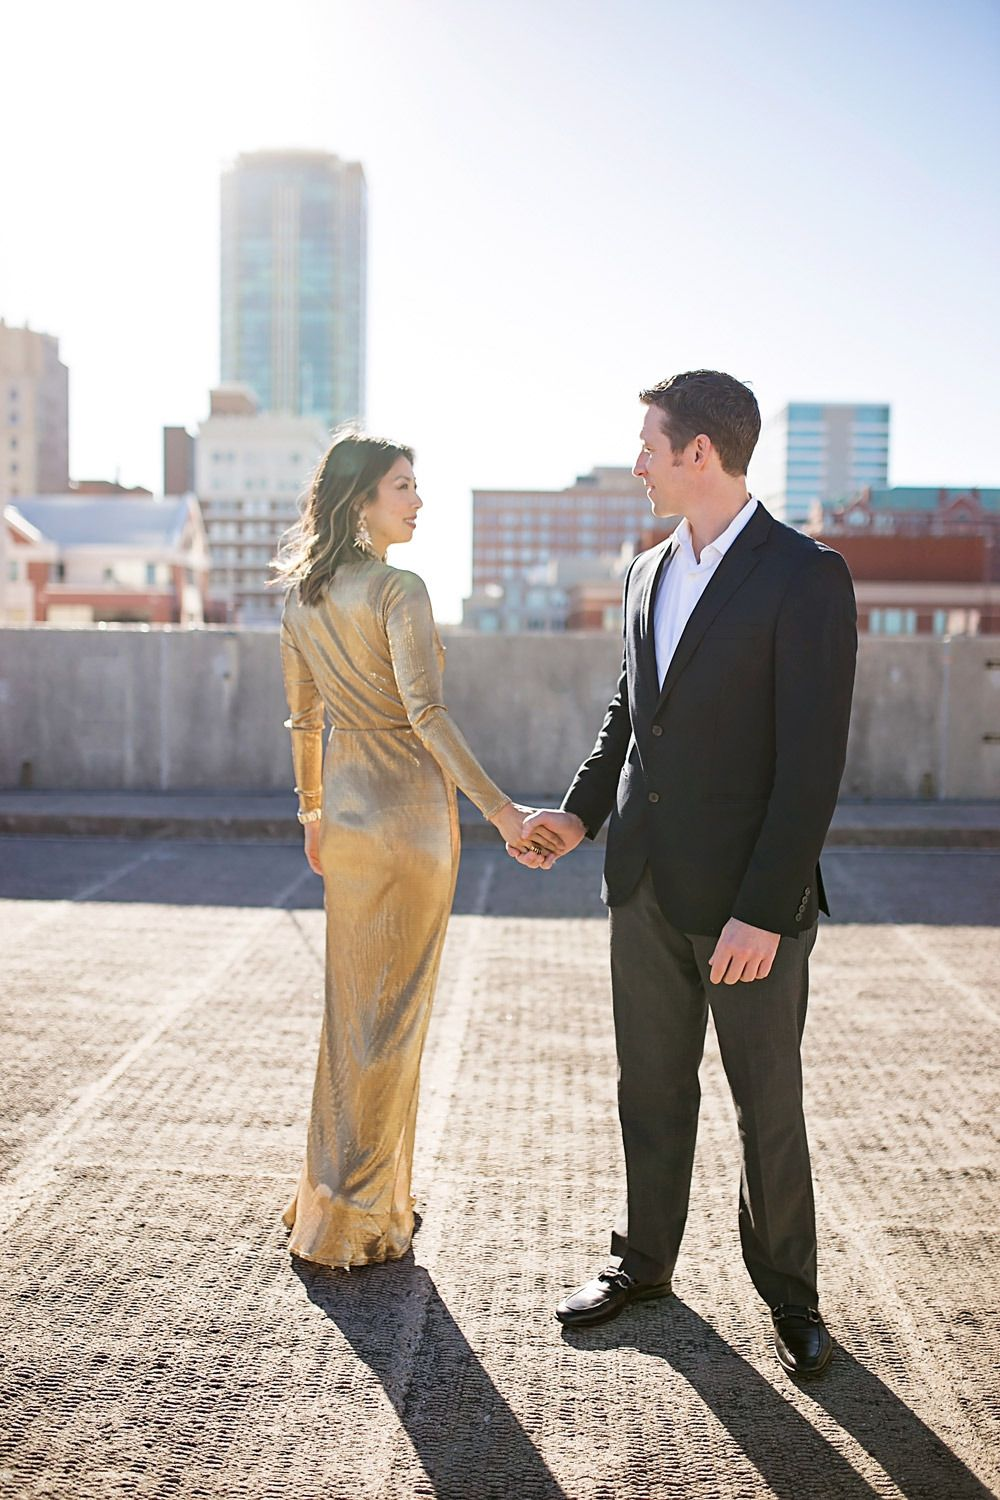 5 Tips for a Great Couples Photoshoot + Nordstrom Sale Picks http://styleofsam.com/2016/12/30/couples-photoshoot/ #couplesphotoshoot #fortworth #nyeoutfit